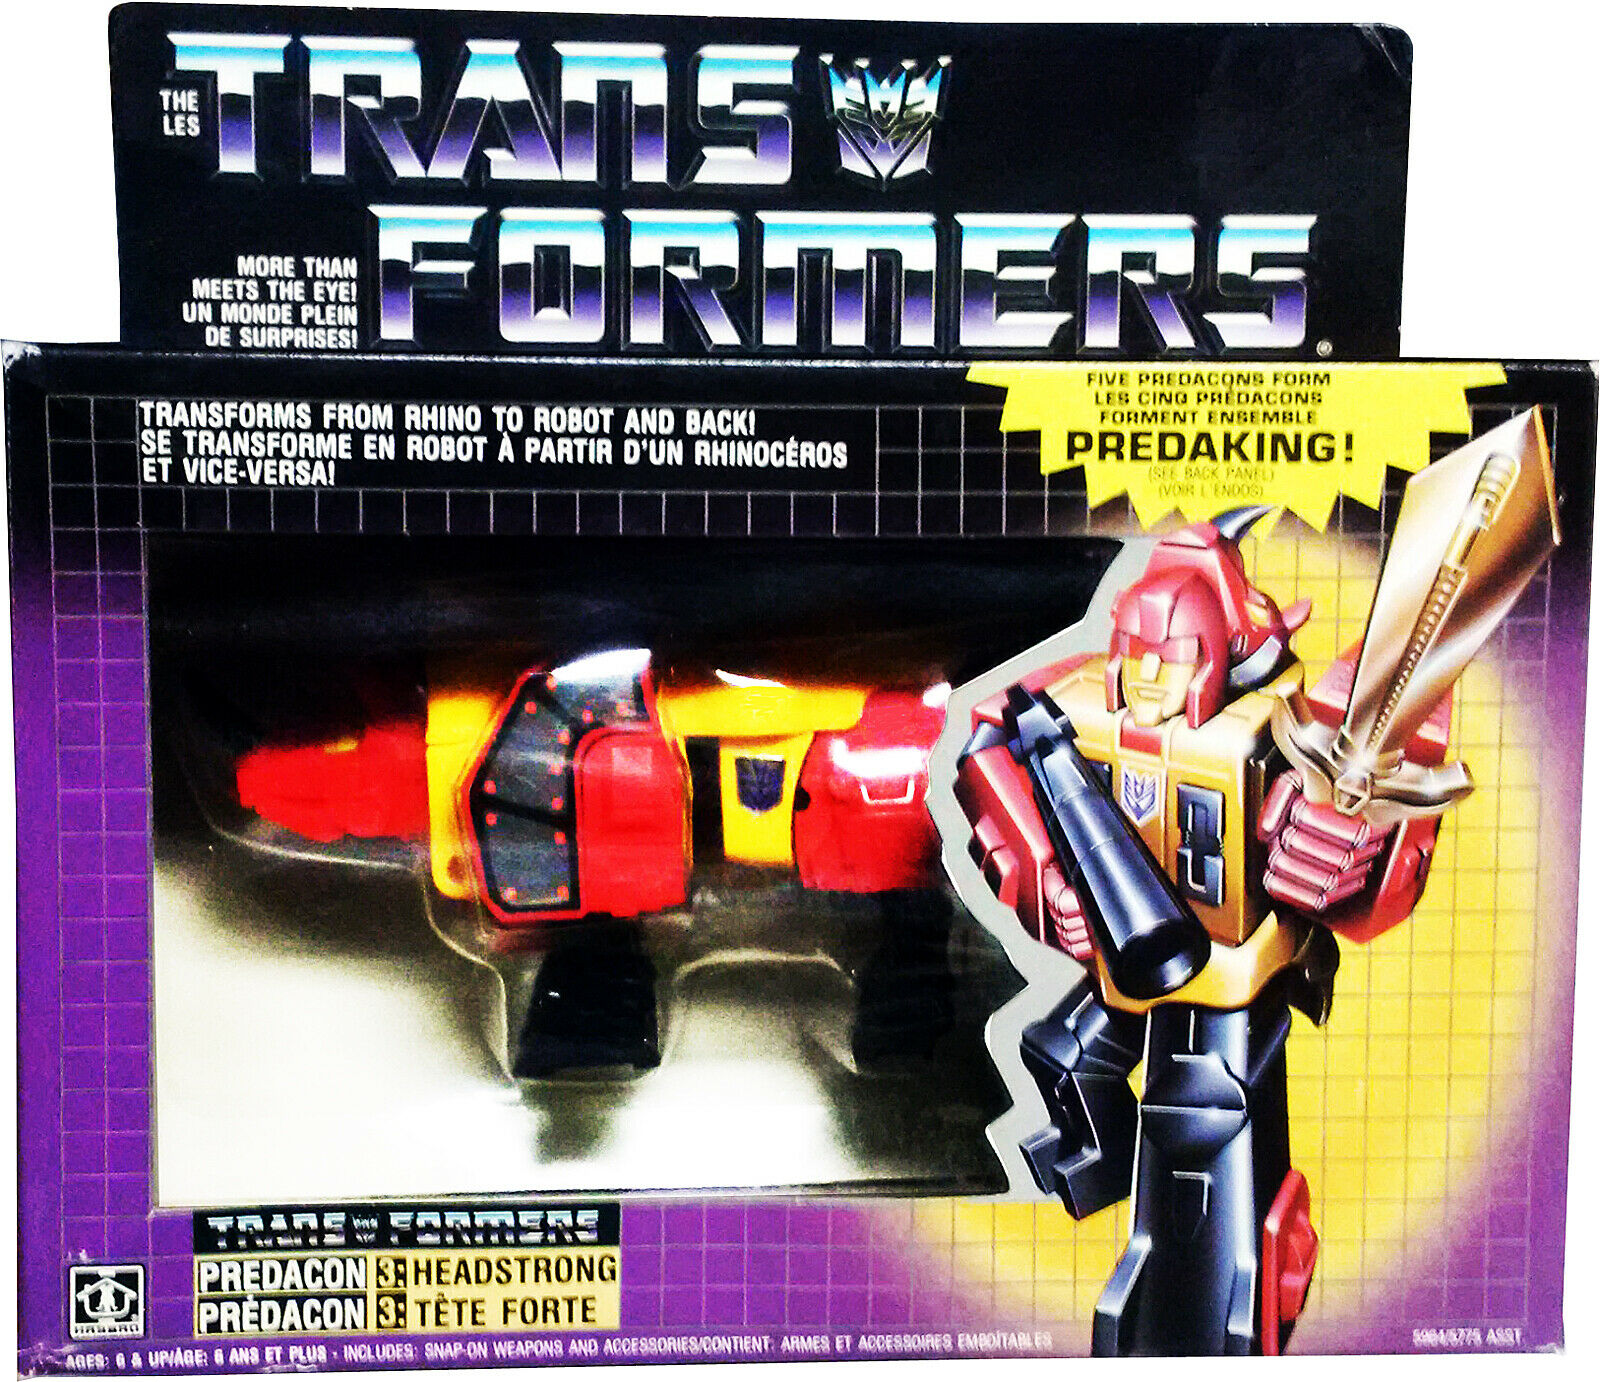 Transformers Prossoacon 3  Headstrong, Takara, Vintage G1 1986, Near MISB, AFA IT